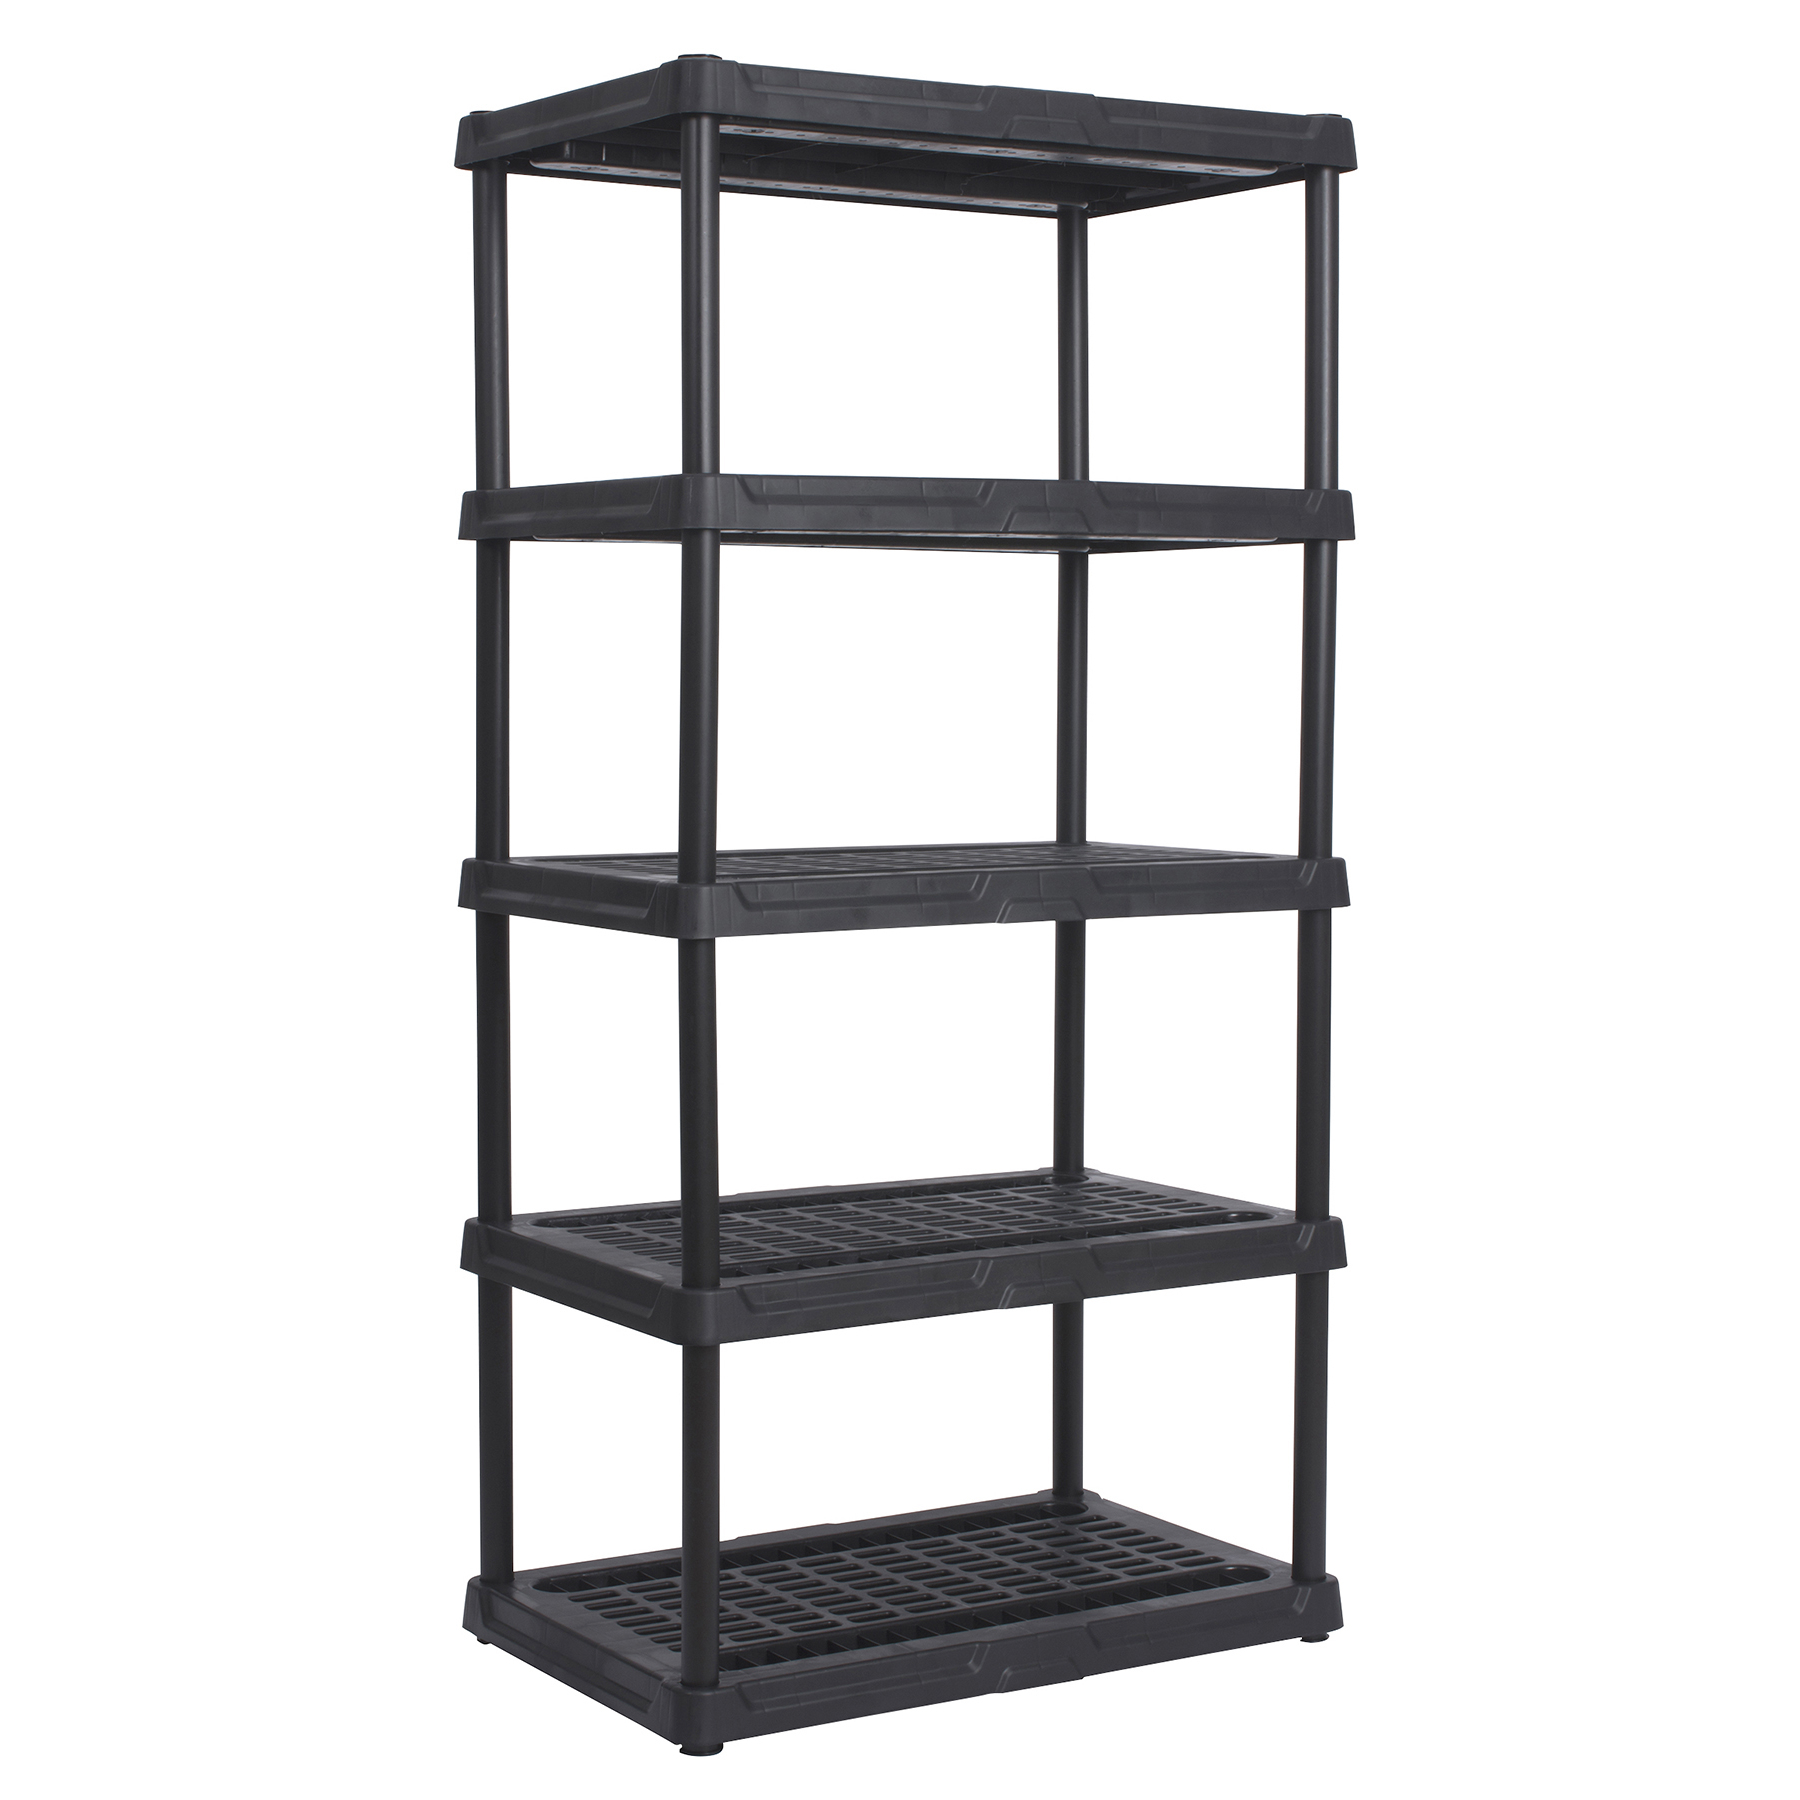 """Continental Commercial Products 3618BK5 36"""" X 18"""" X 72"""" Black Ventilated Resin 5-Tier Shelf"""